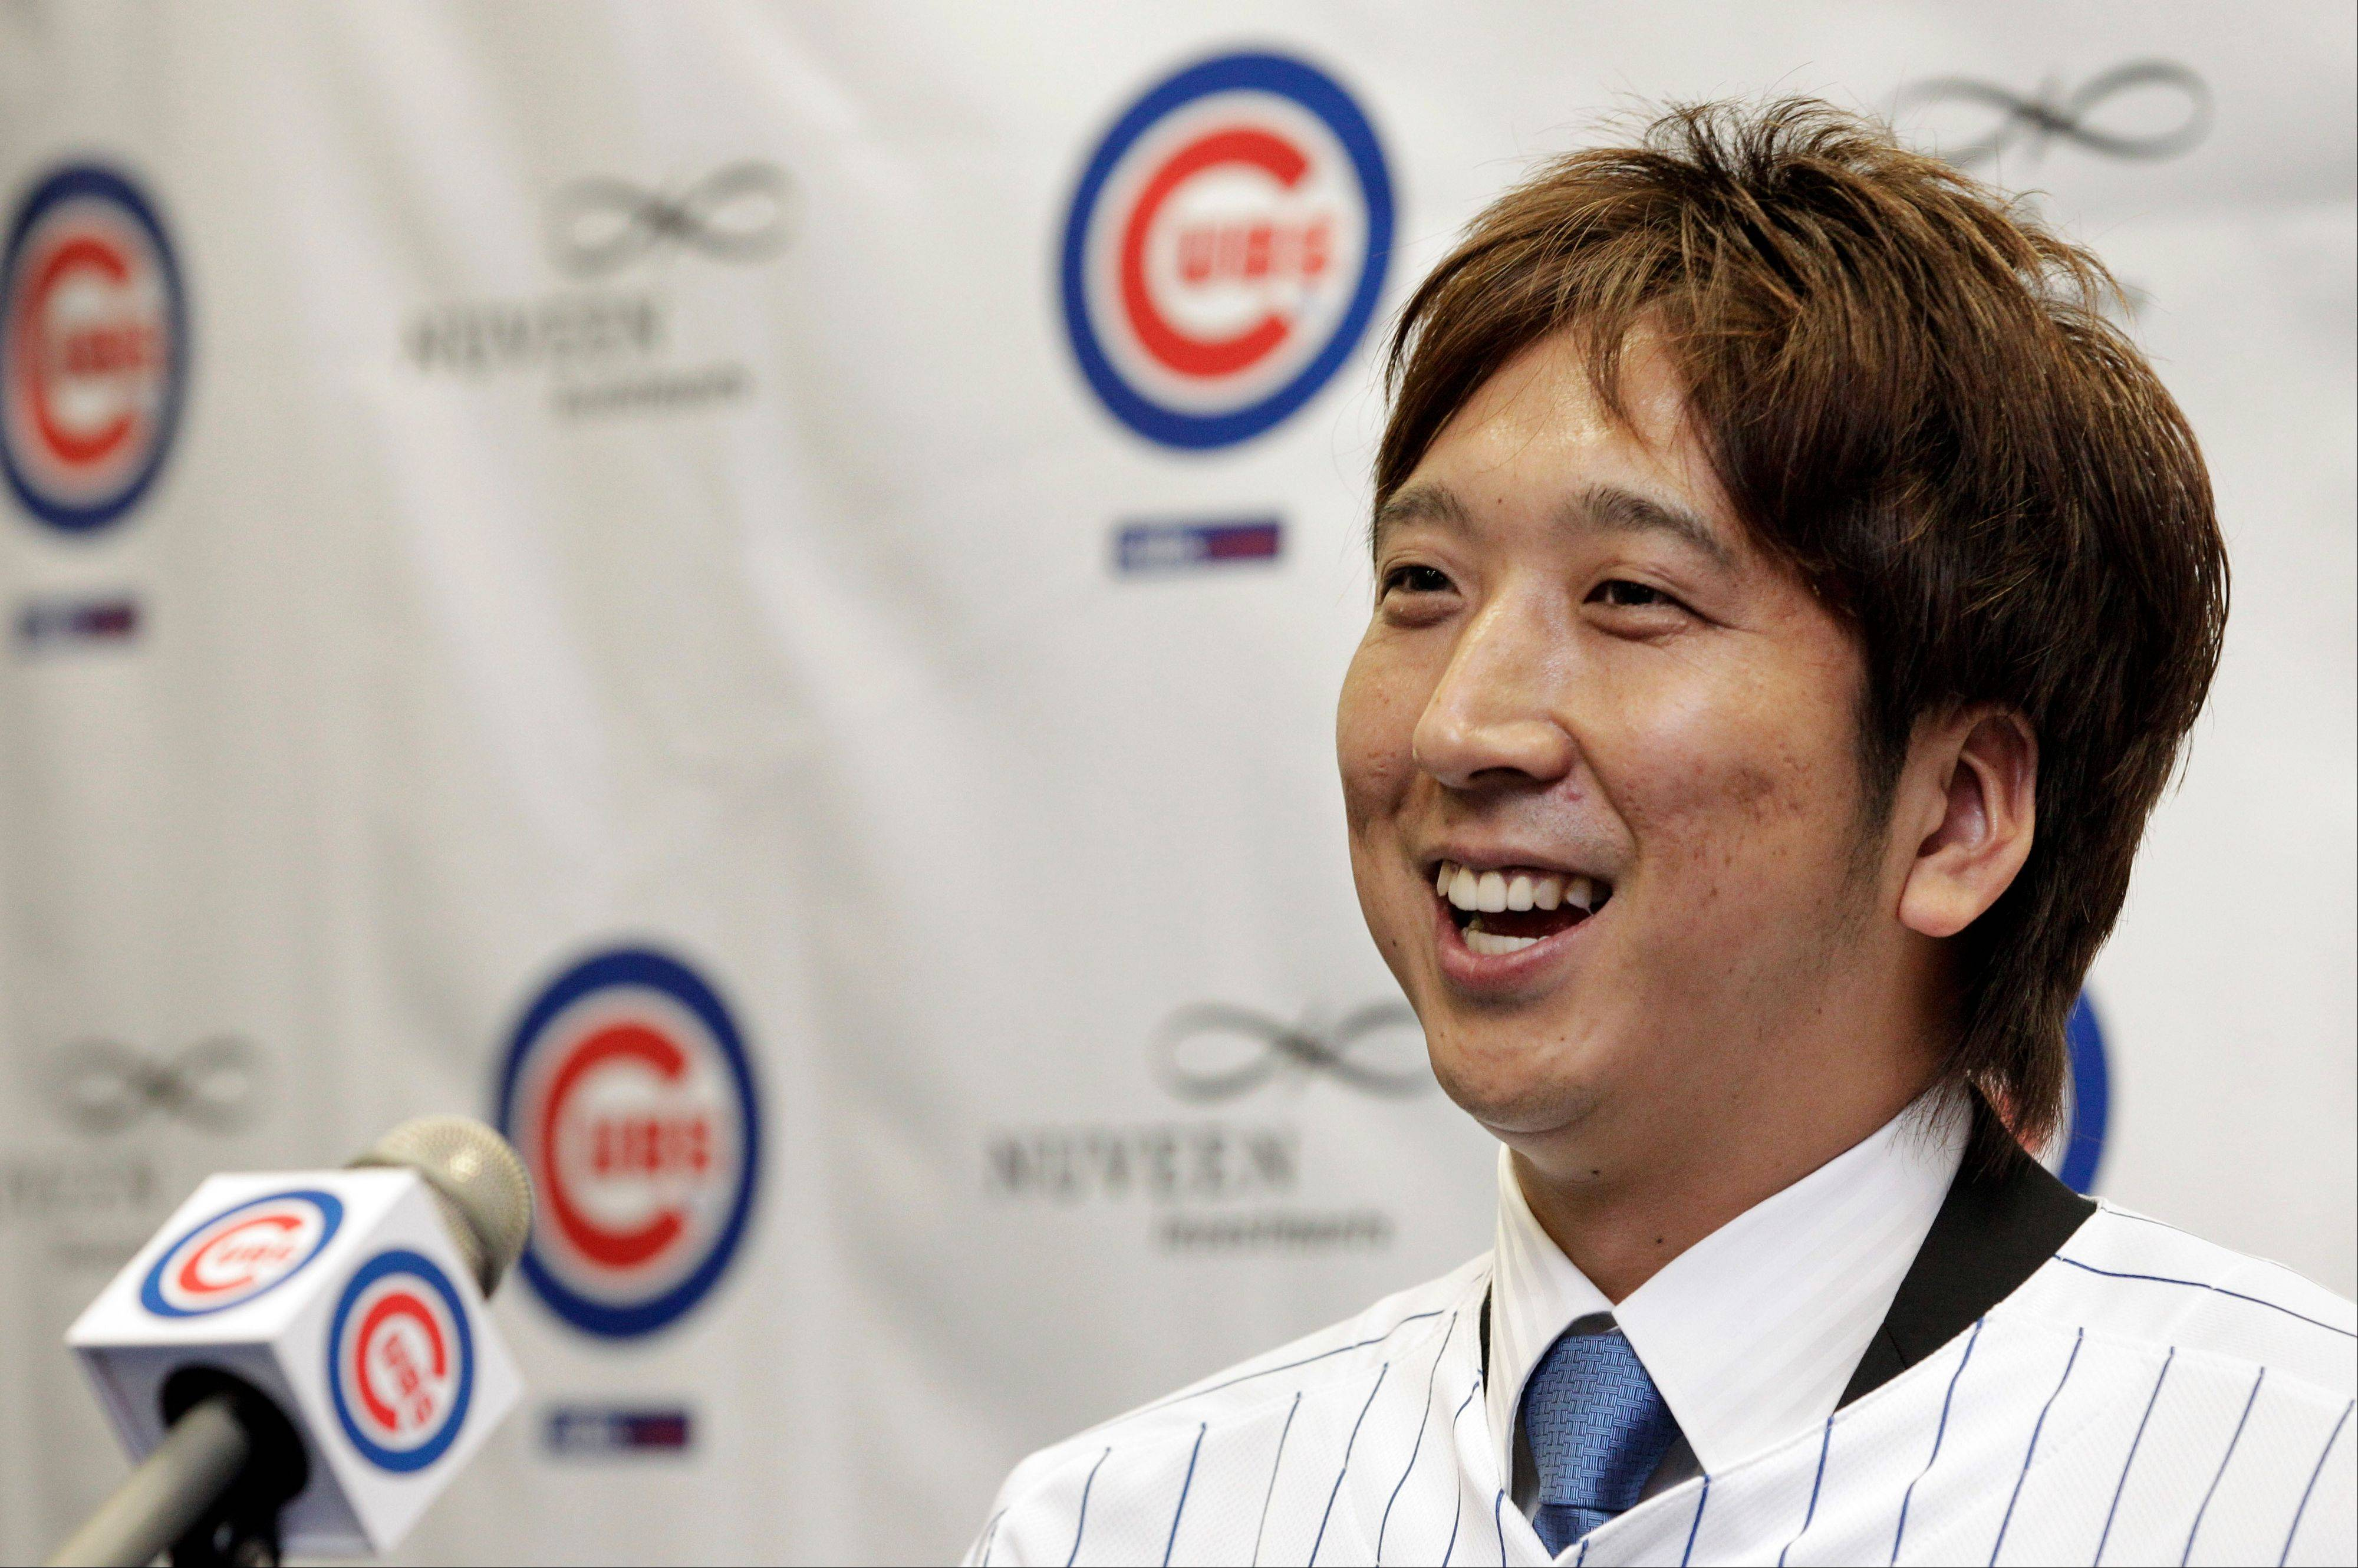 New Cubs pitcher Kyuji Fujikawa pitched the last 12 seasons with the Hanshin Tigers of Japan�s Central League. He signed a two-year contract for $9.5 million to join the Cubs.